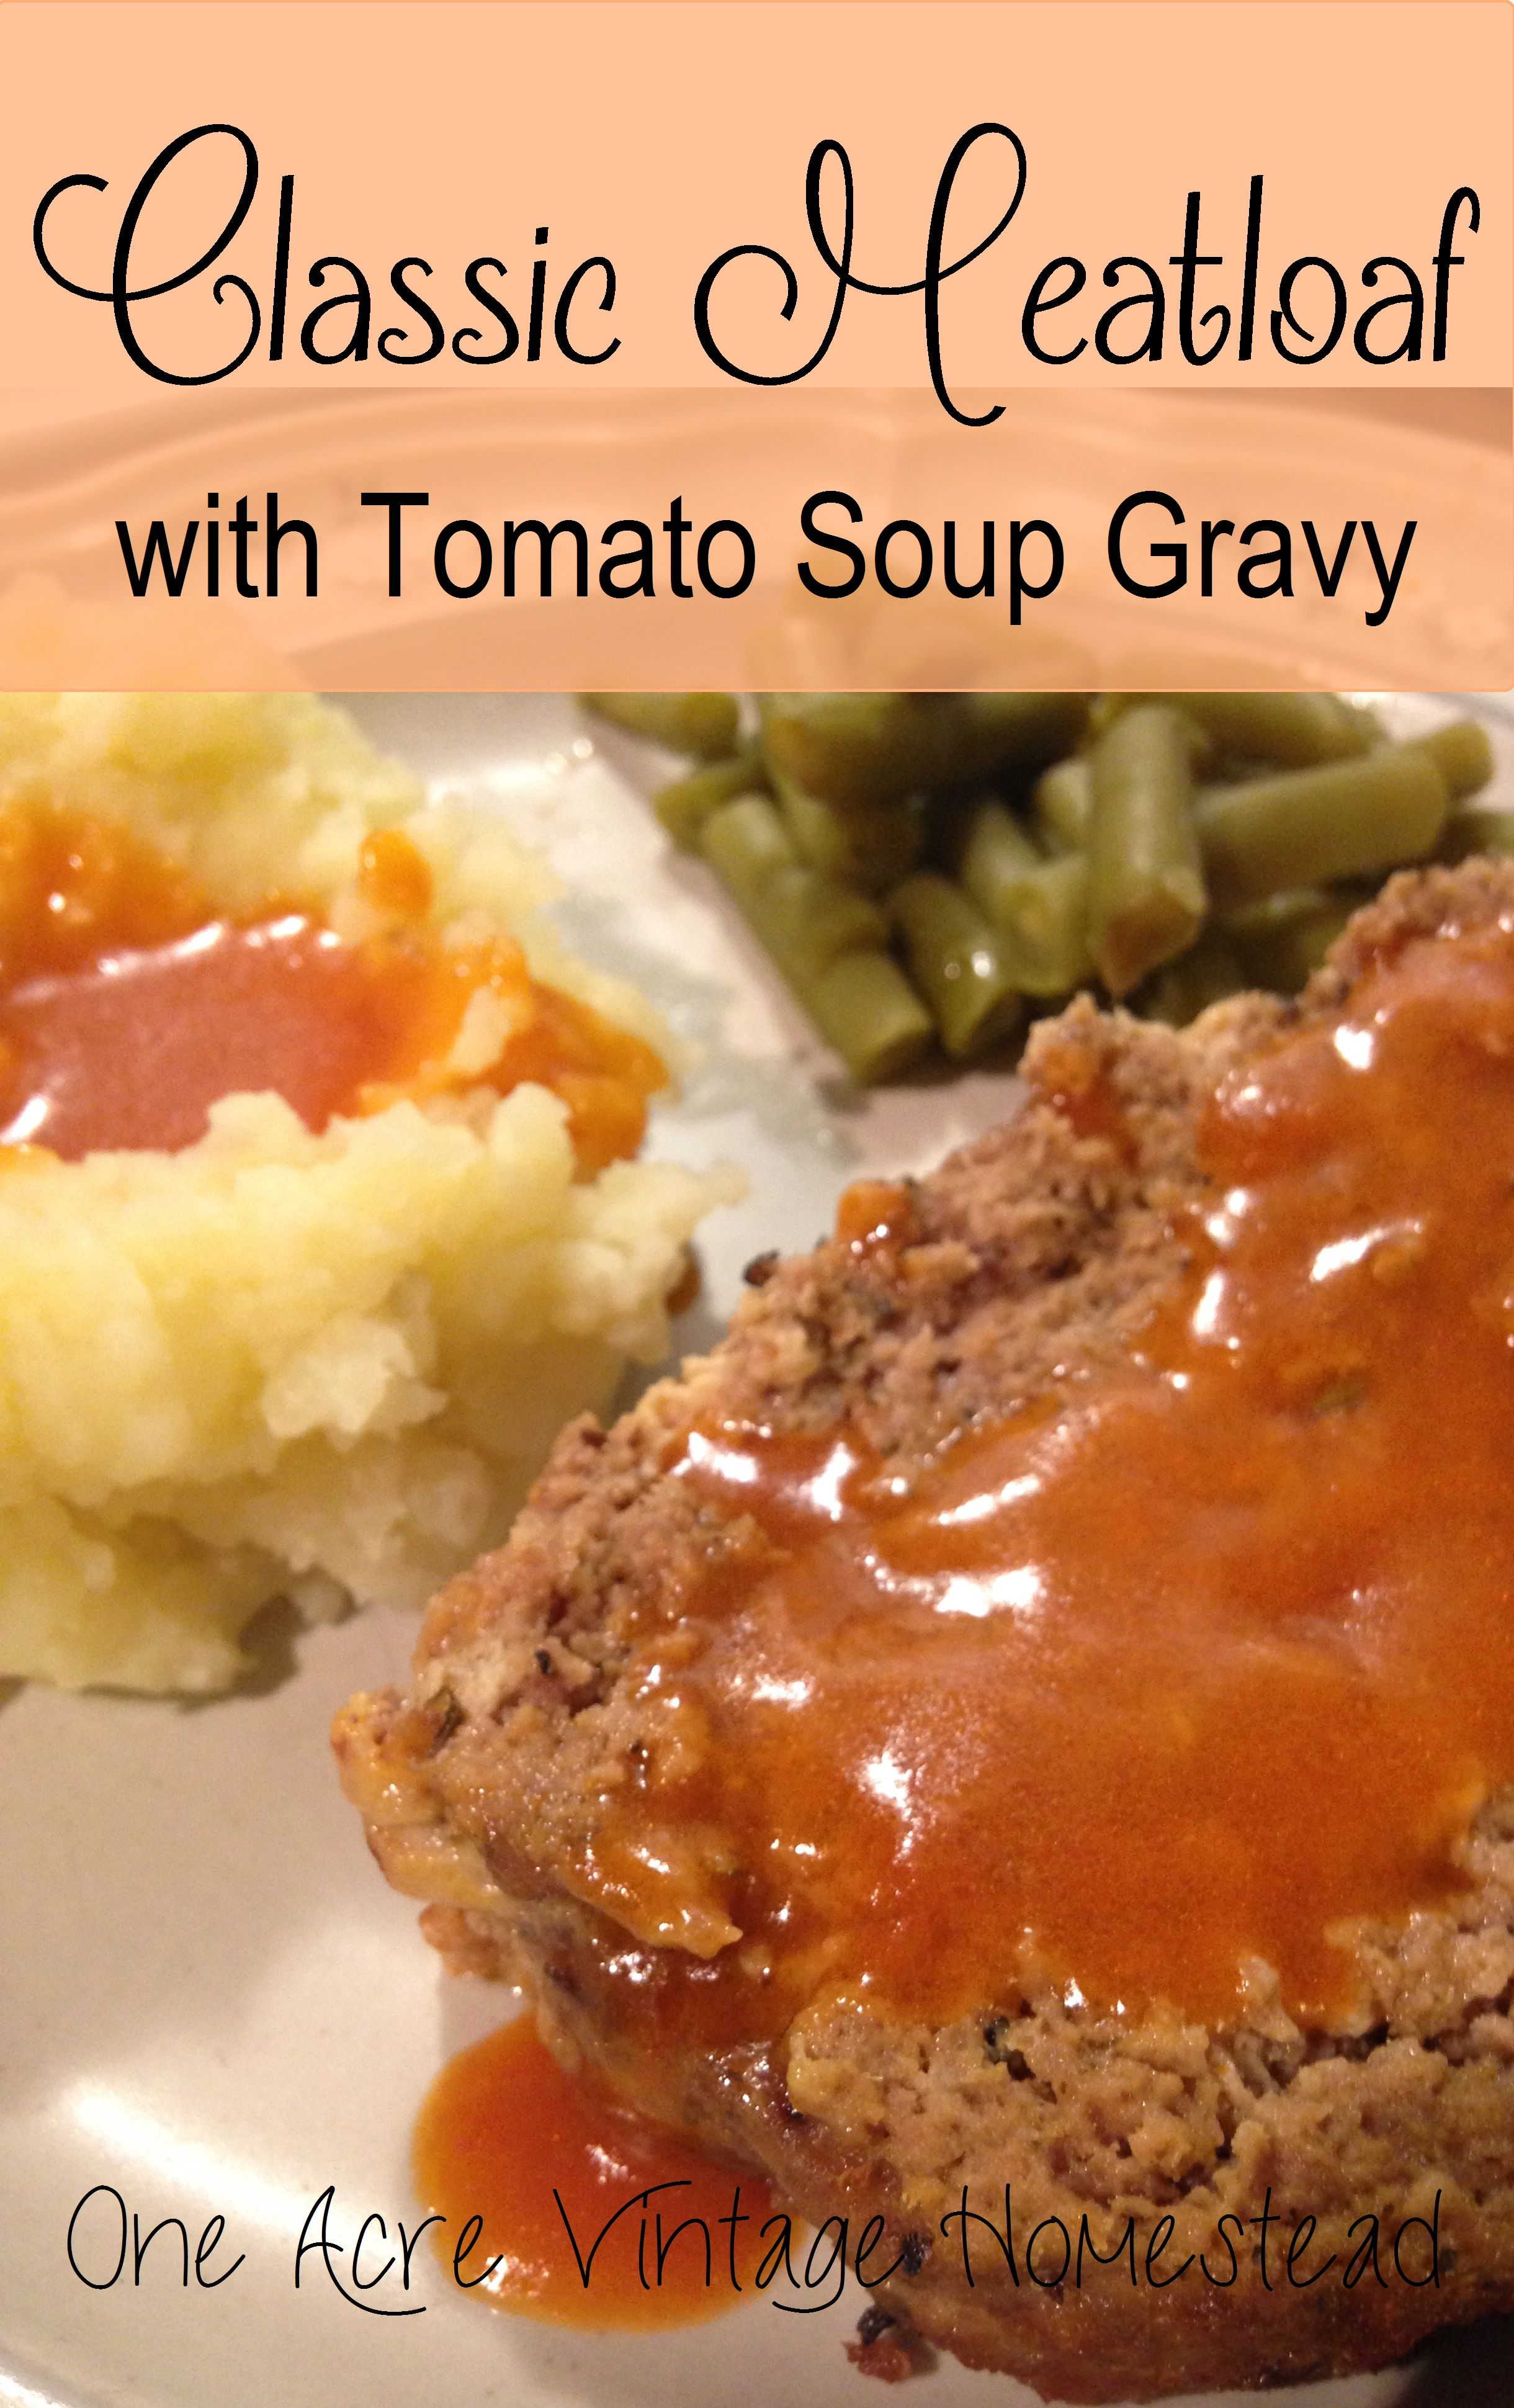 Classic Meatloaf With Tomato Soup Gravy Classic Meatloaf Recipe Campbells Soup Recipes Meatloaf